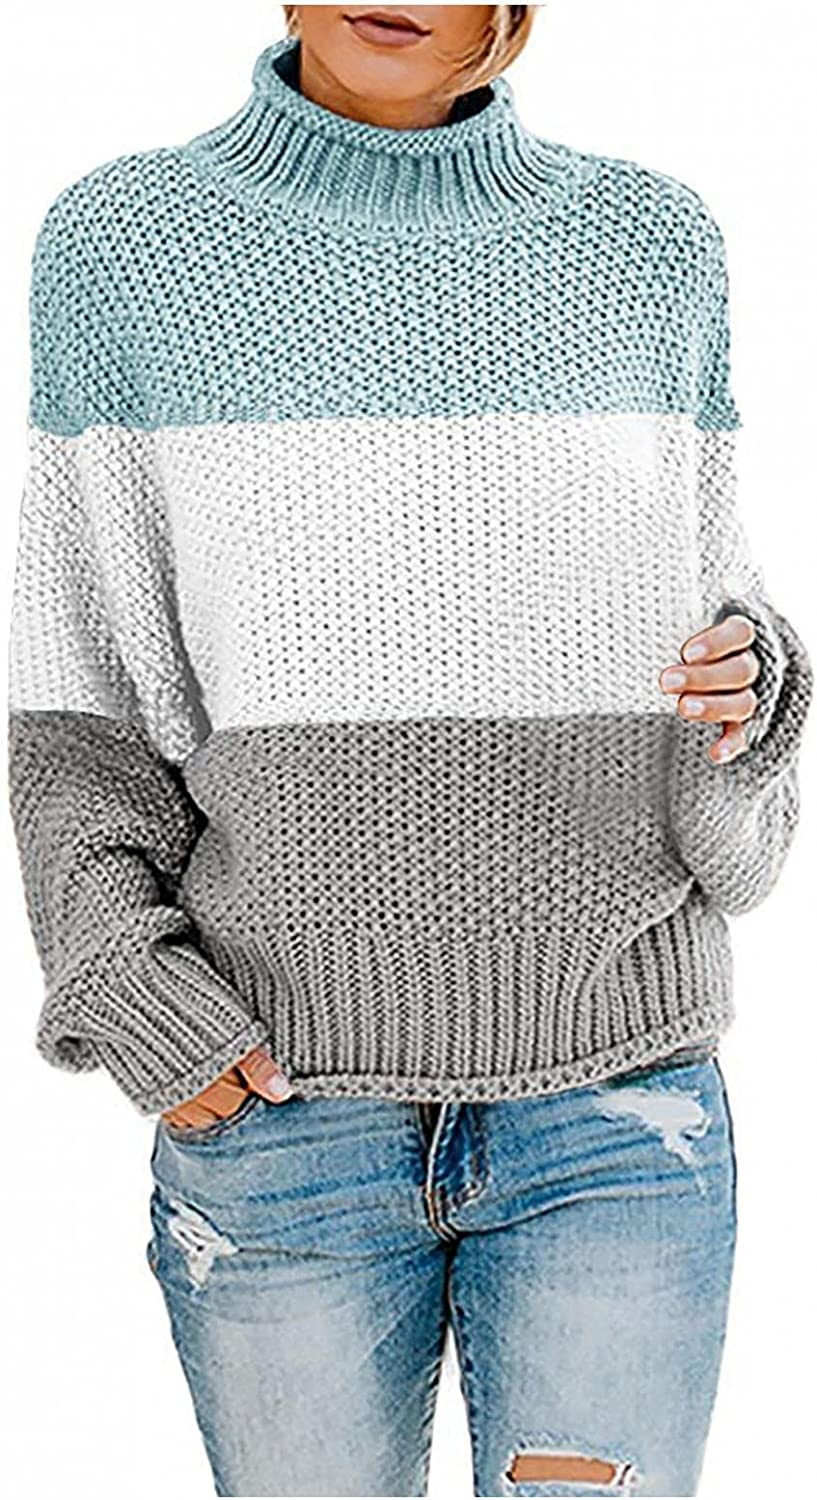 UOCUFY Sweaters for Women, Womens Turtleneck Long Sleeve Loose Oversized Chunky Knitted Pullover Sweater Jumper Tops